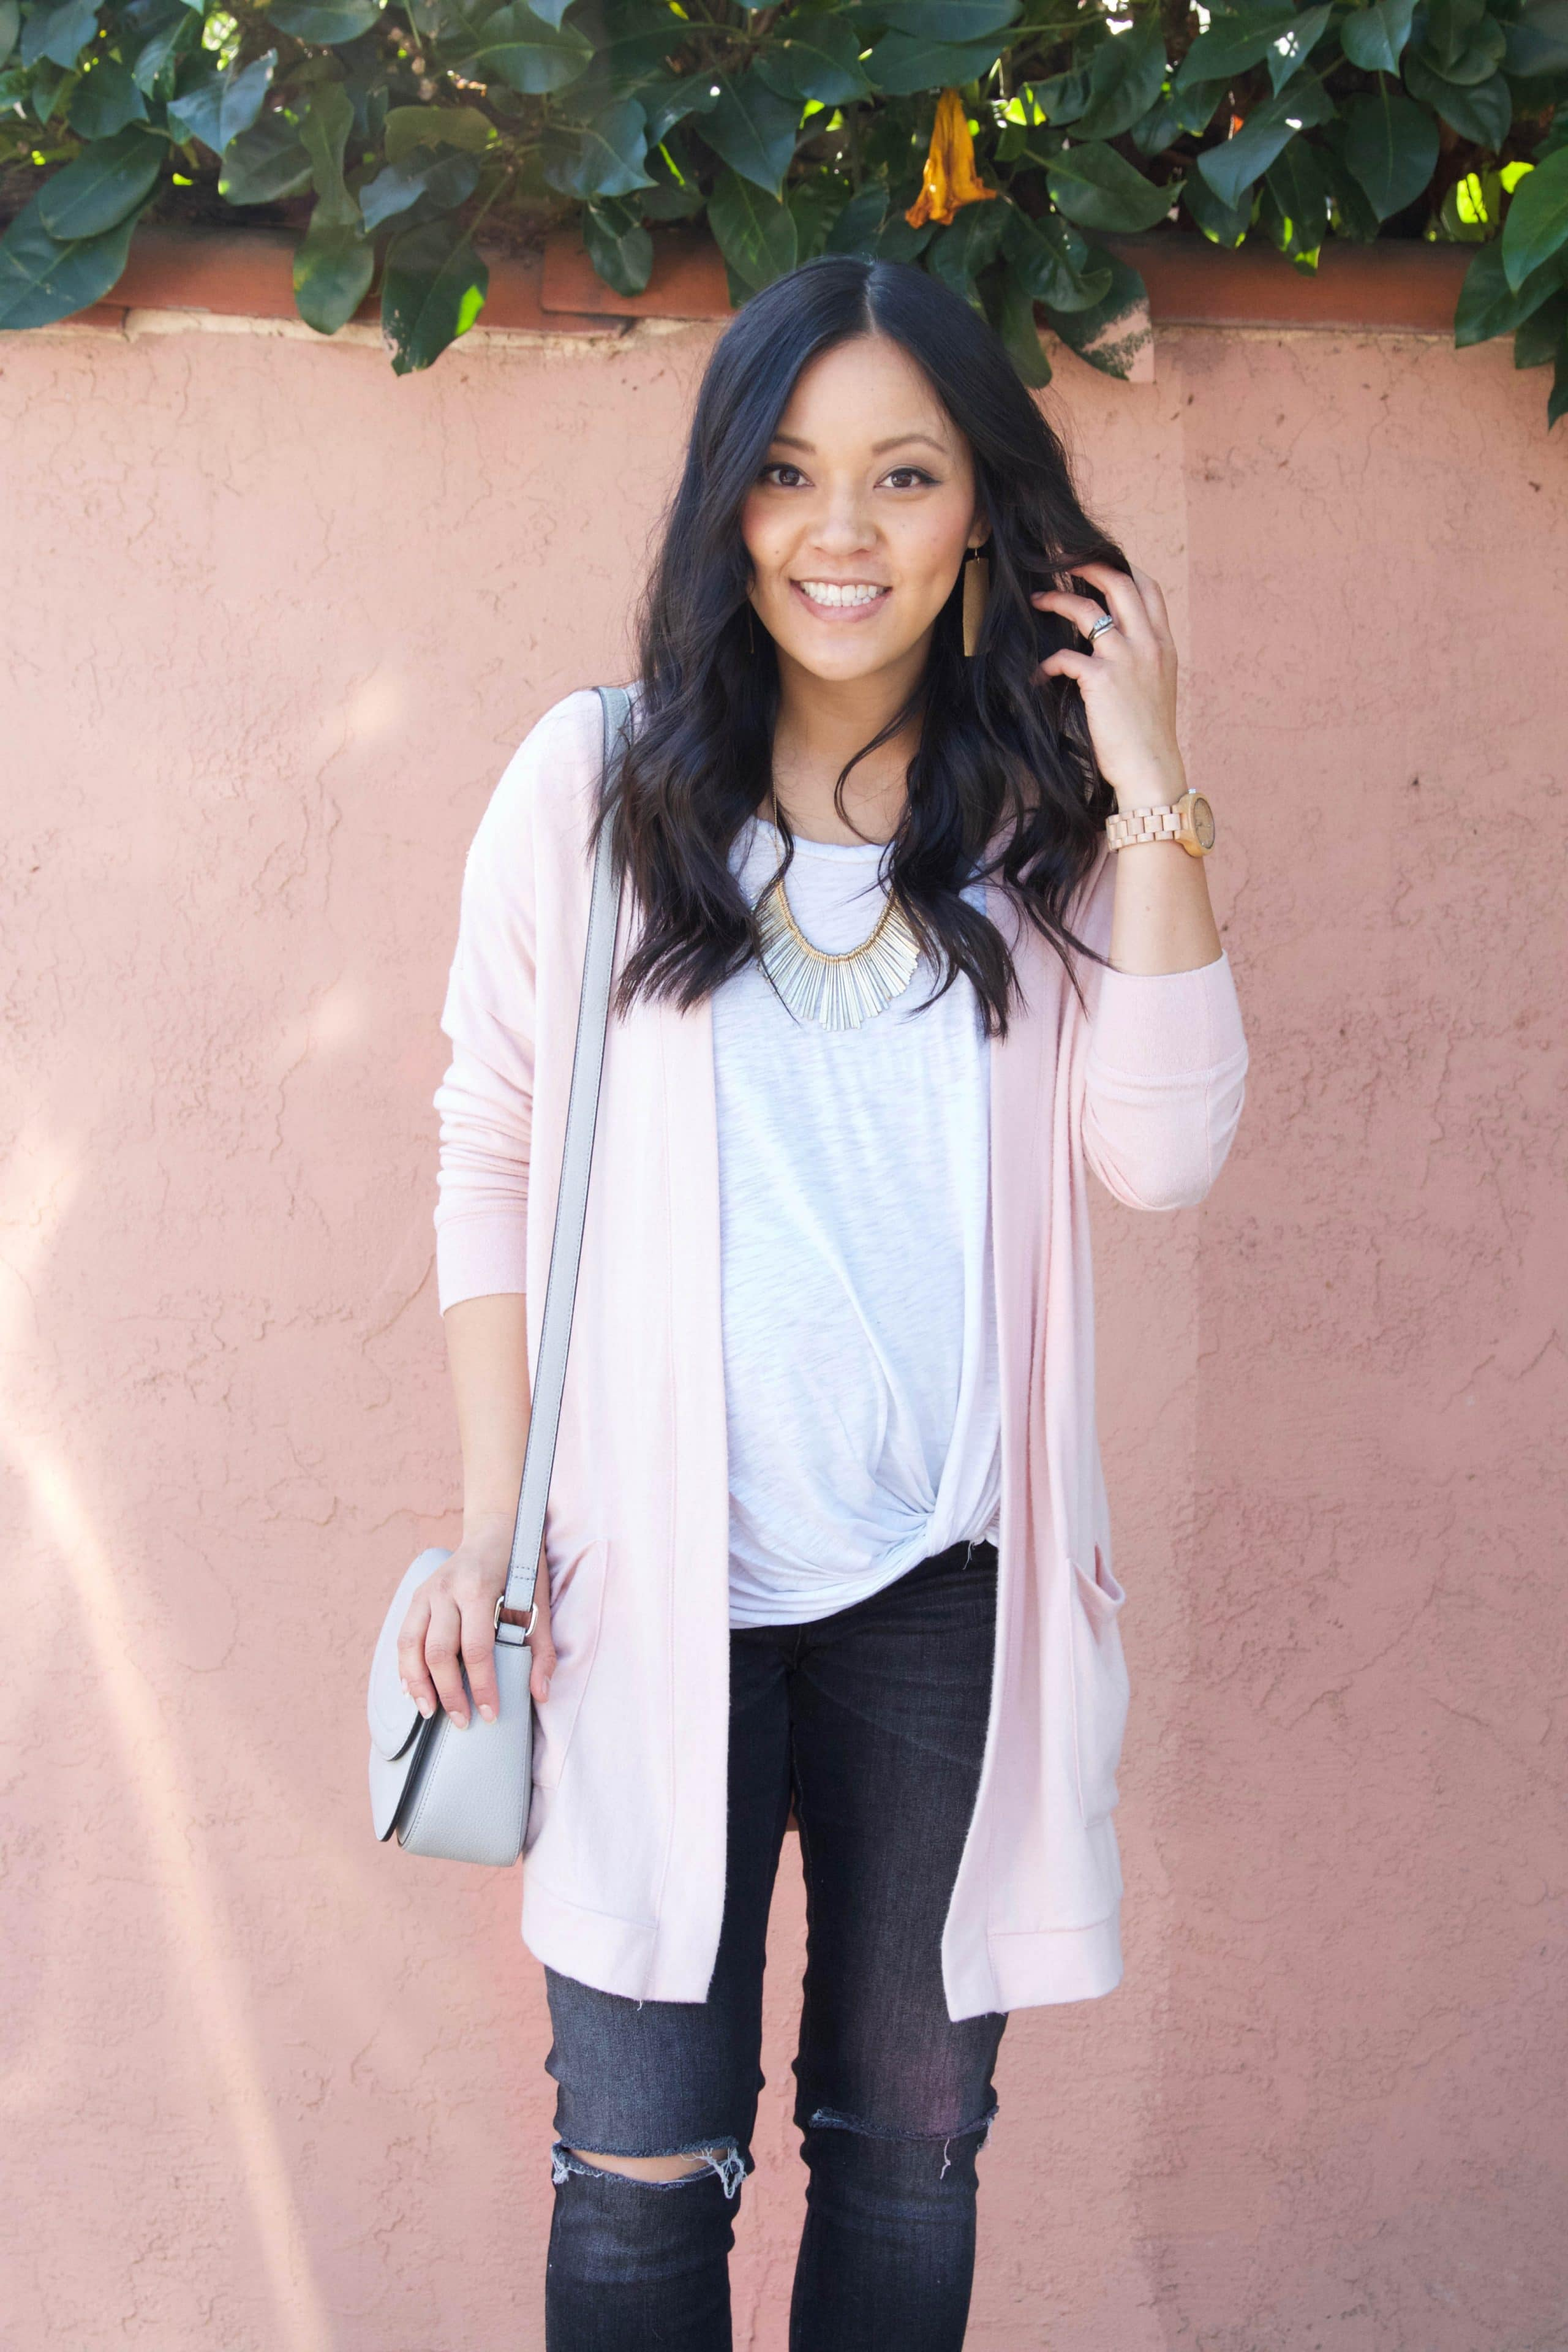 Blush cardi + white twist tee + statement necklace + distressed jeans